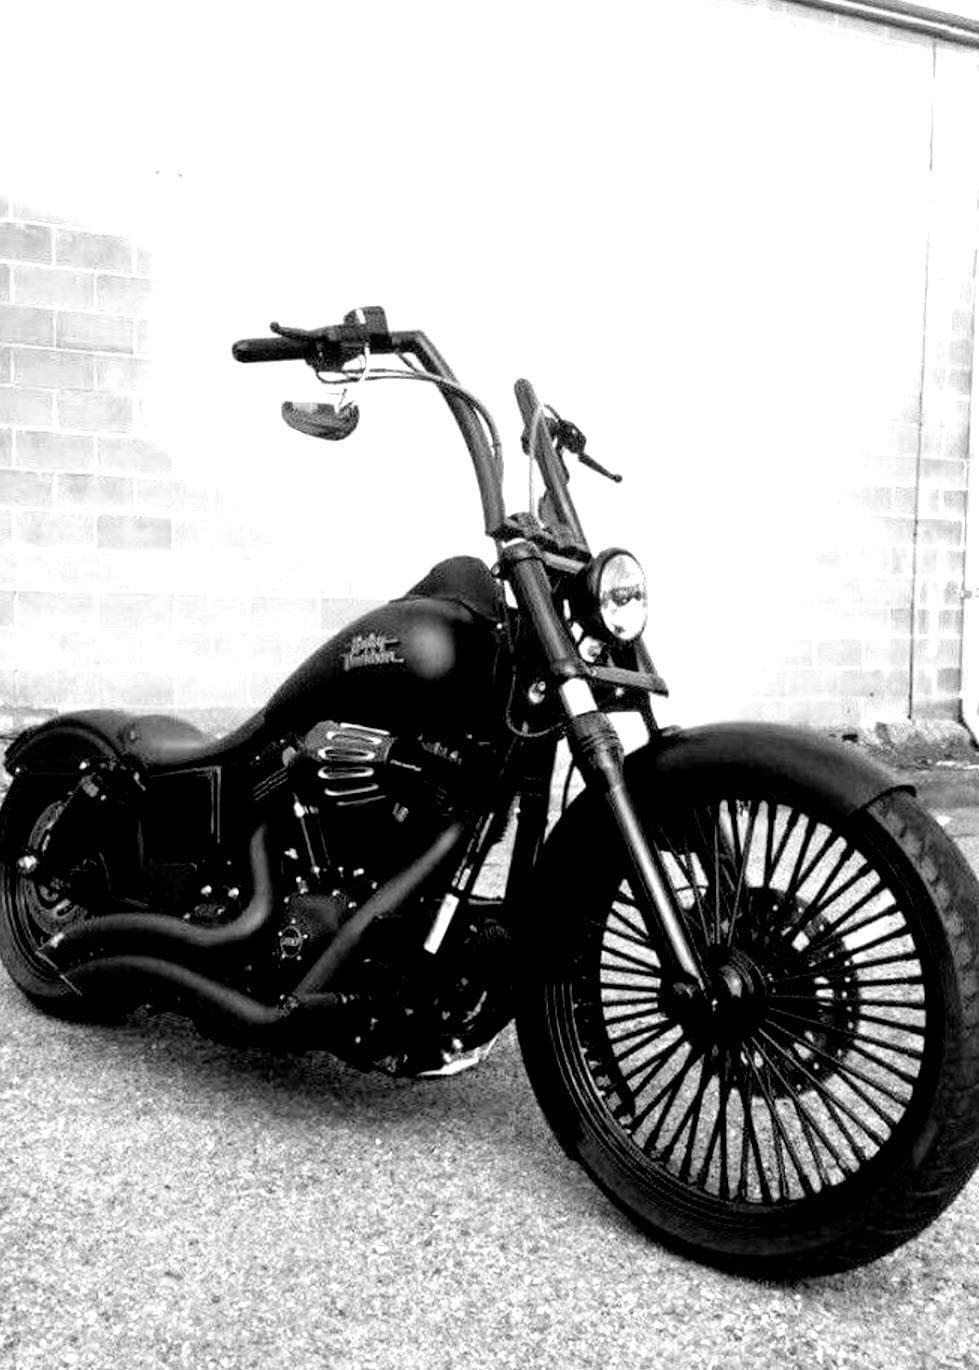 Jbsporty Harley Davidson Dyna Black Out Vinyl Decal Fork Kit Fat Bob Street Bob Custom Low Bobber Kitchen Dining